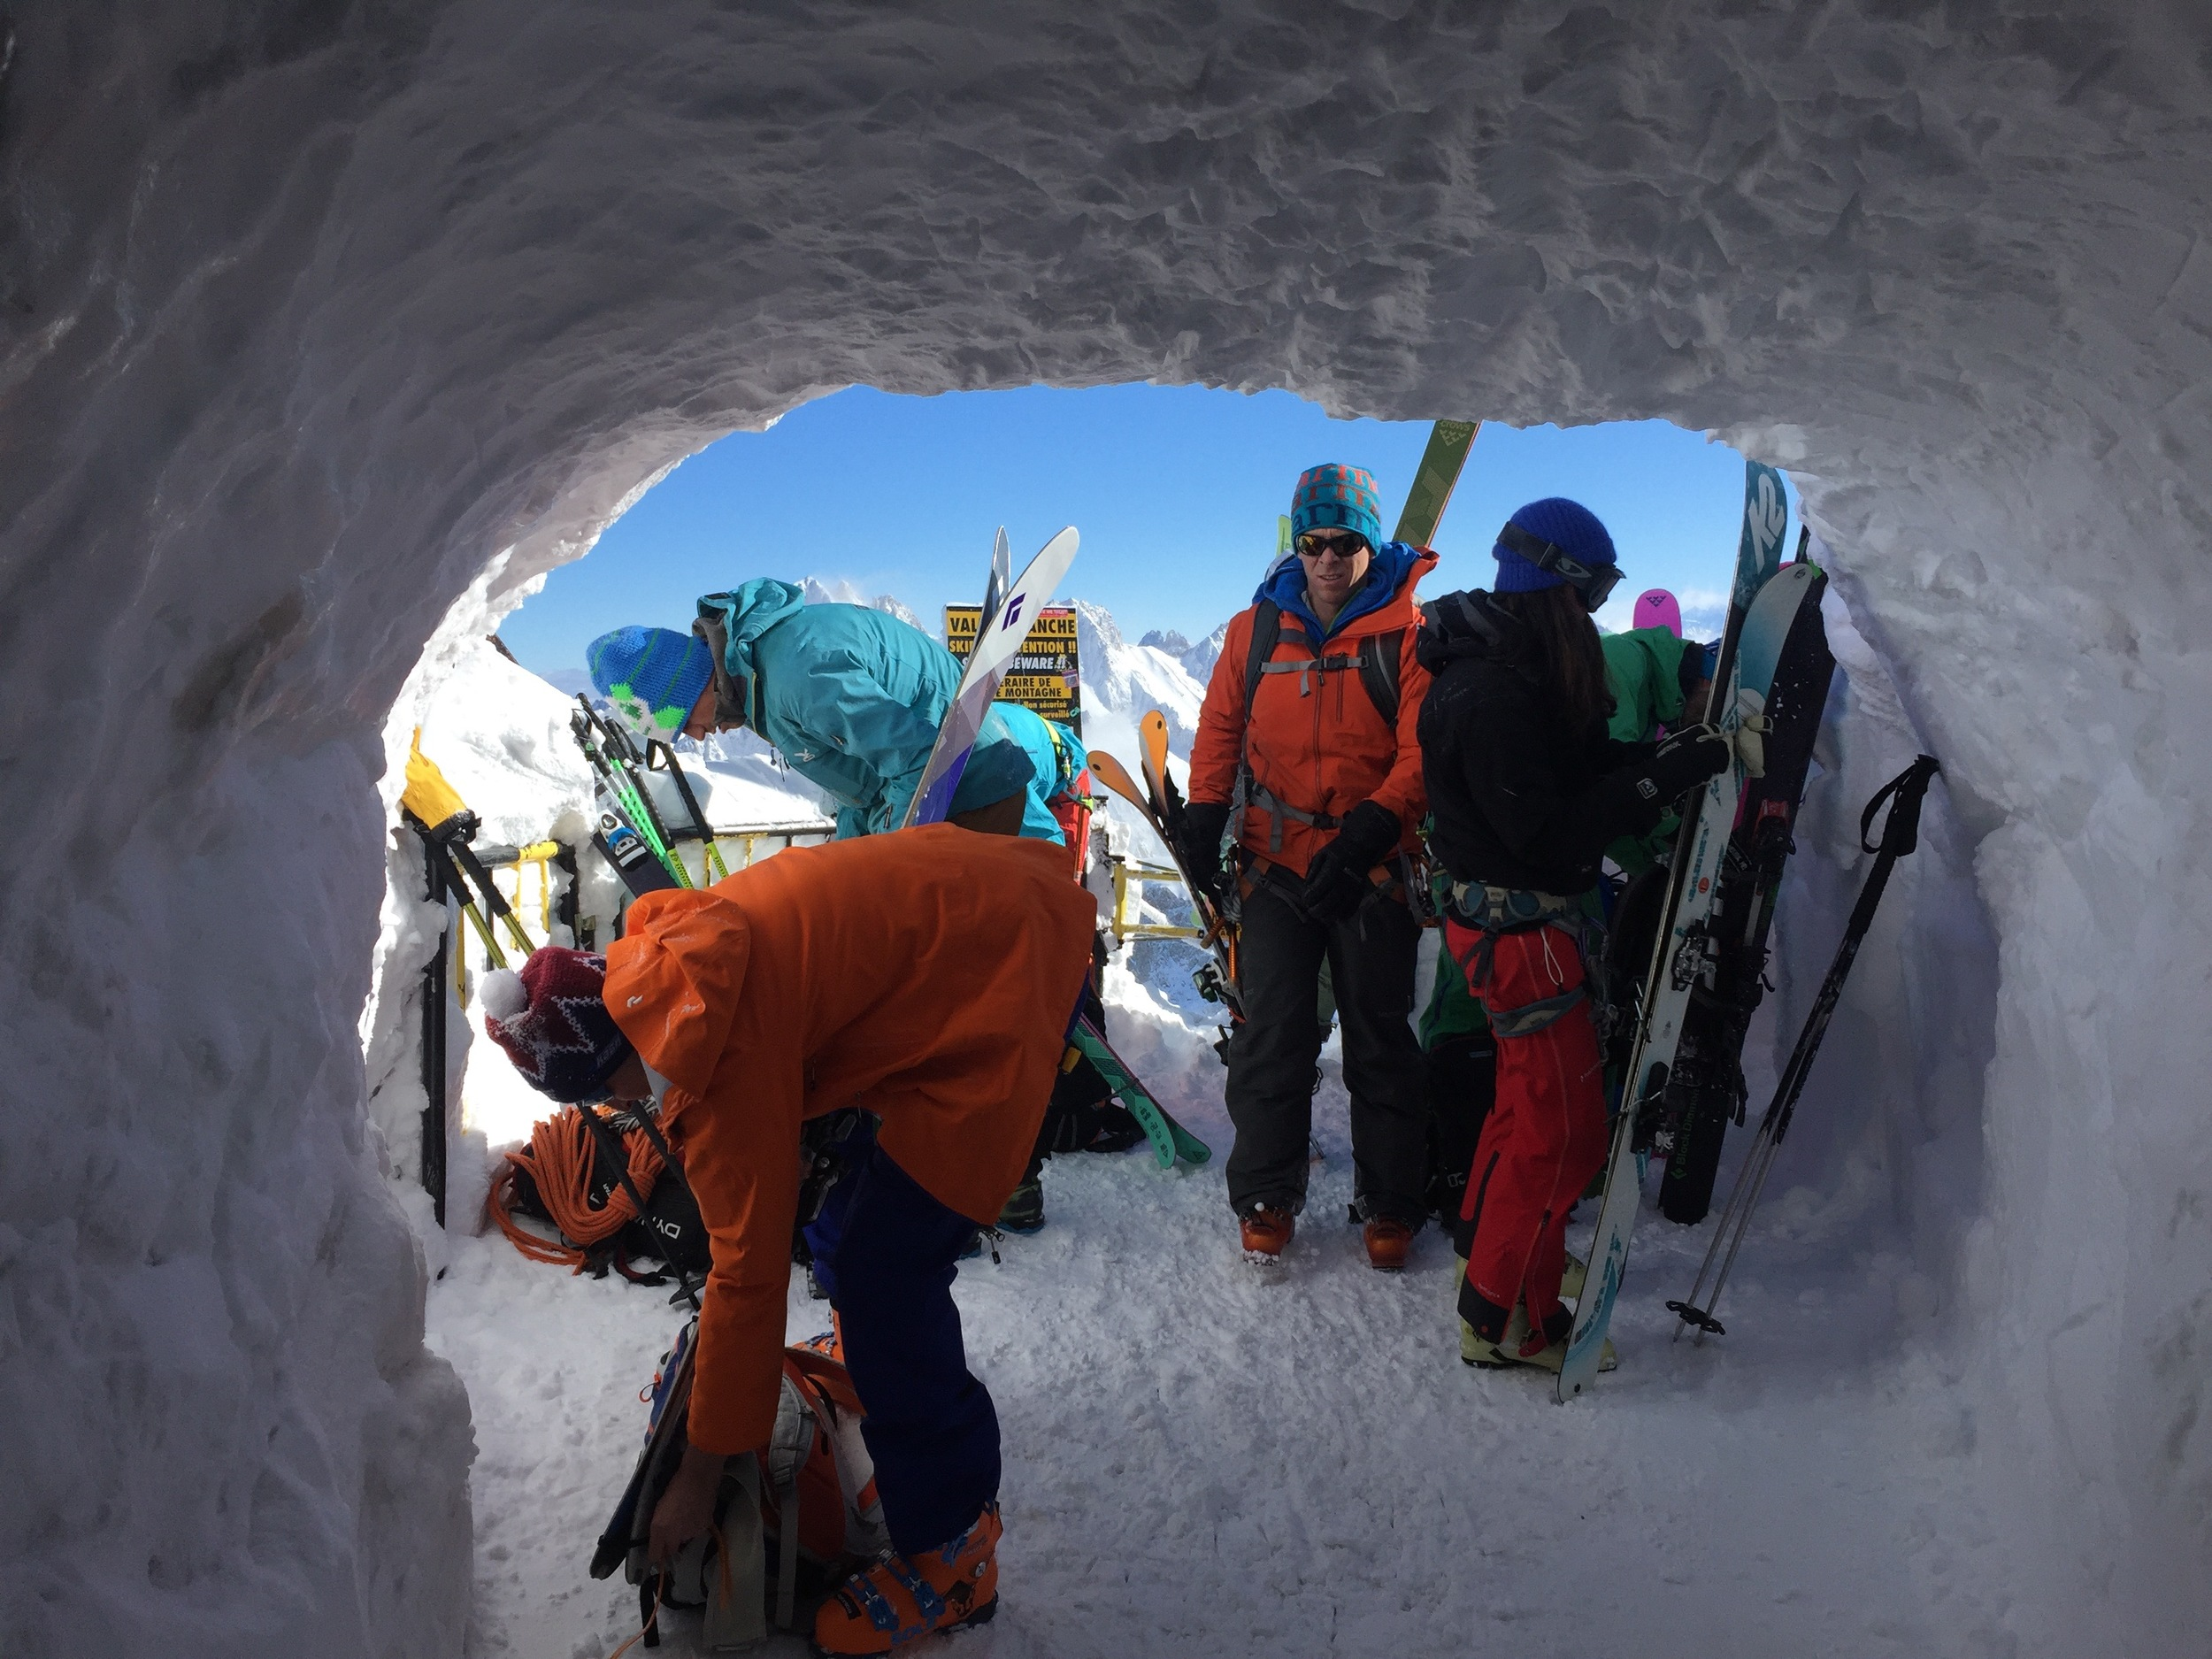 Skiers emerge from the ice tunnel and scramble to secure gear to their packs before making the trek on the arête